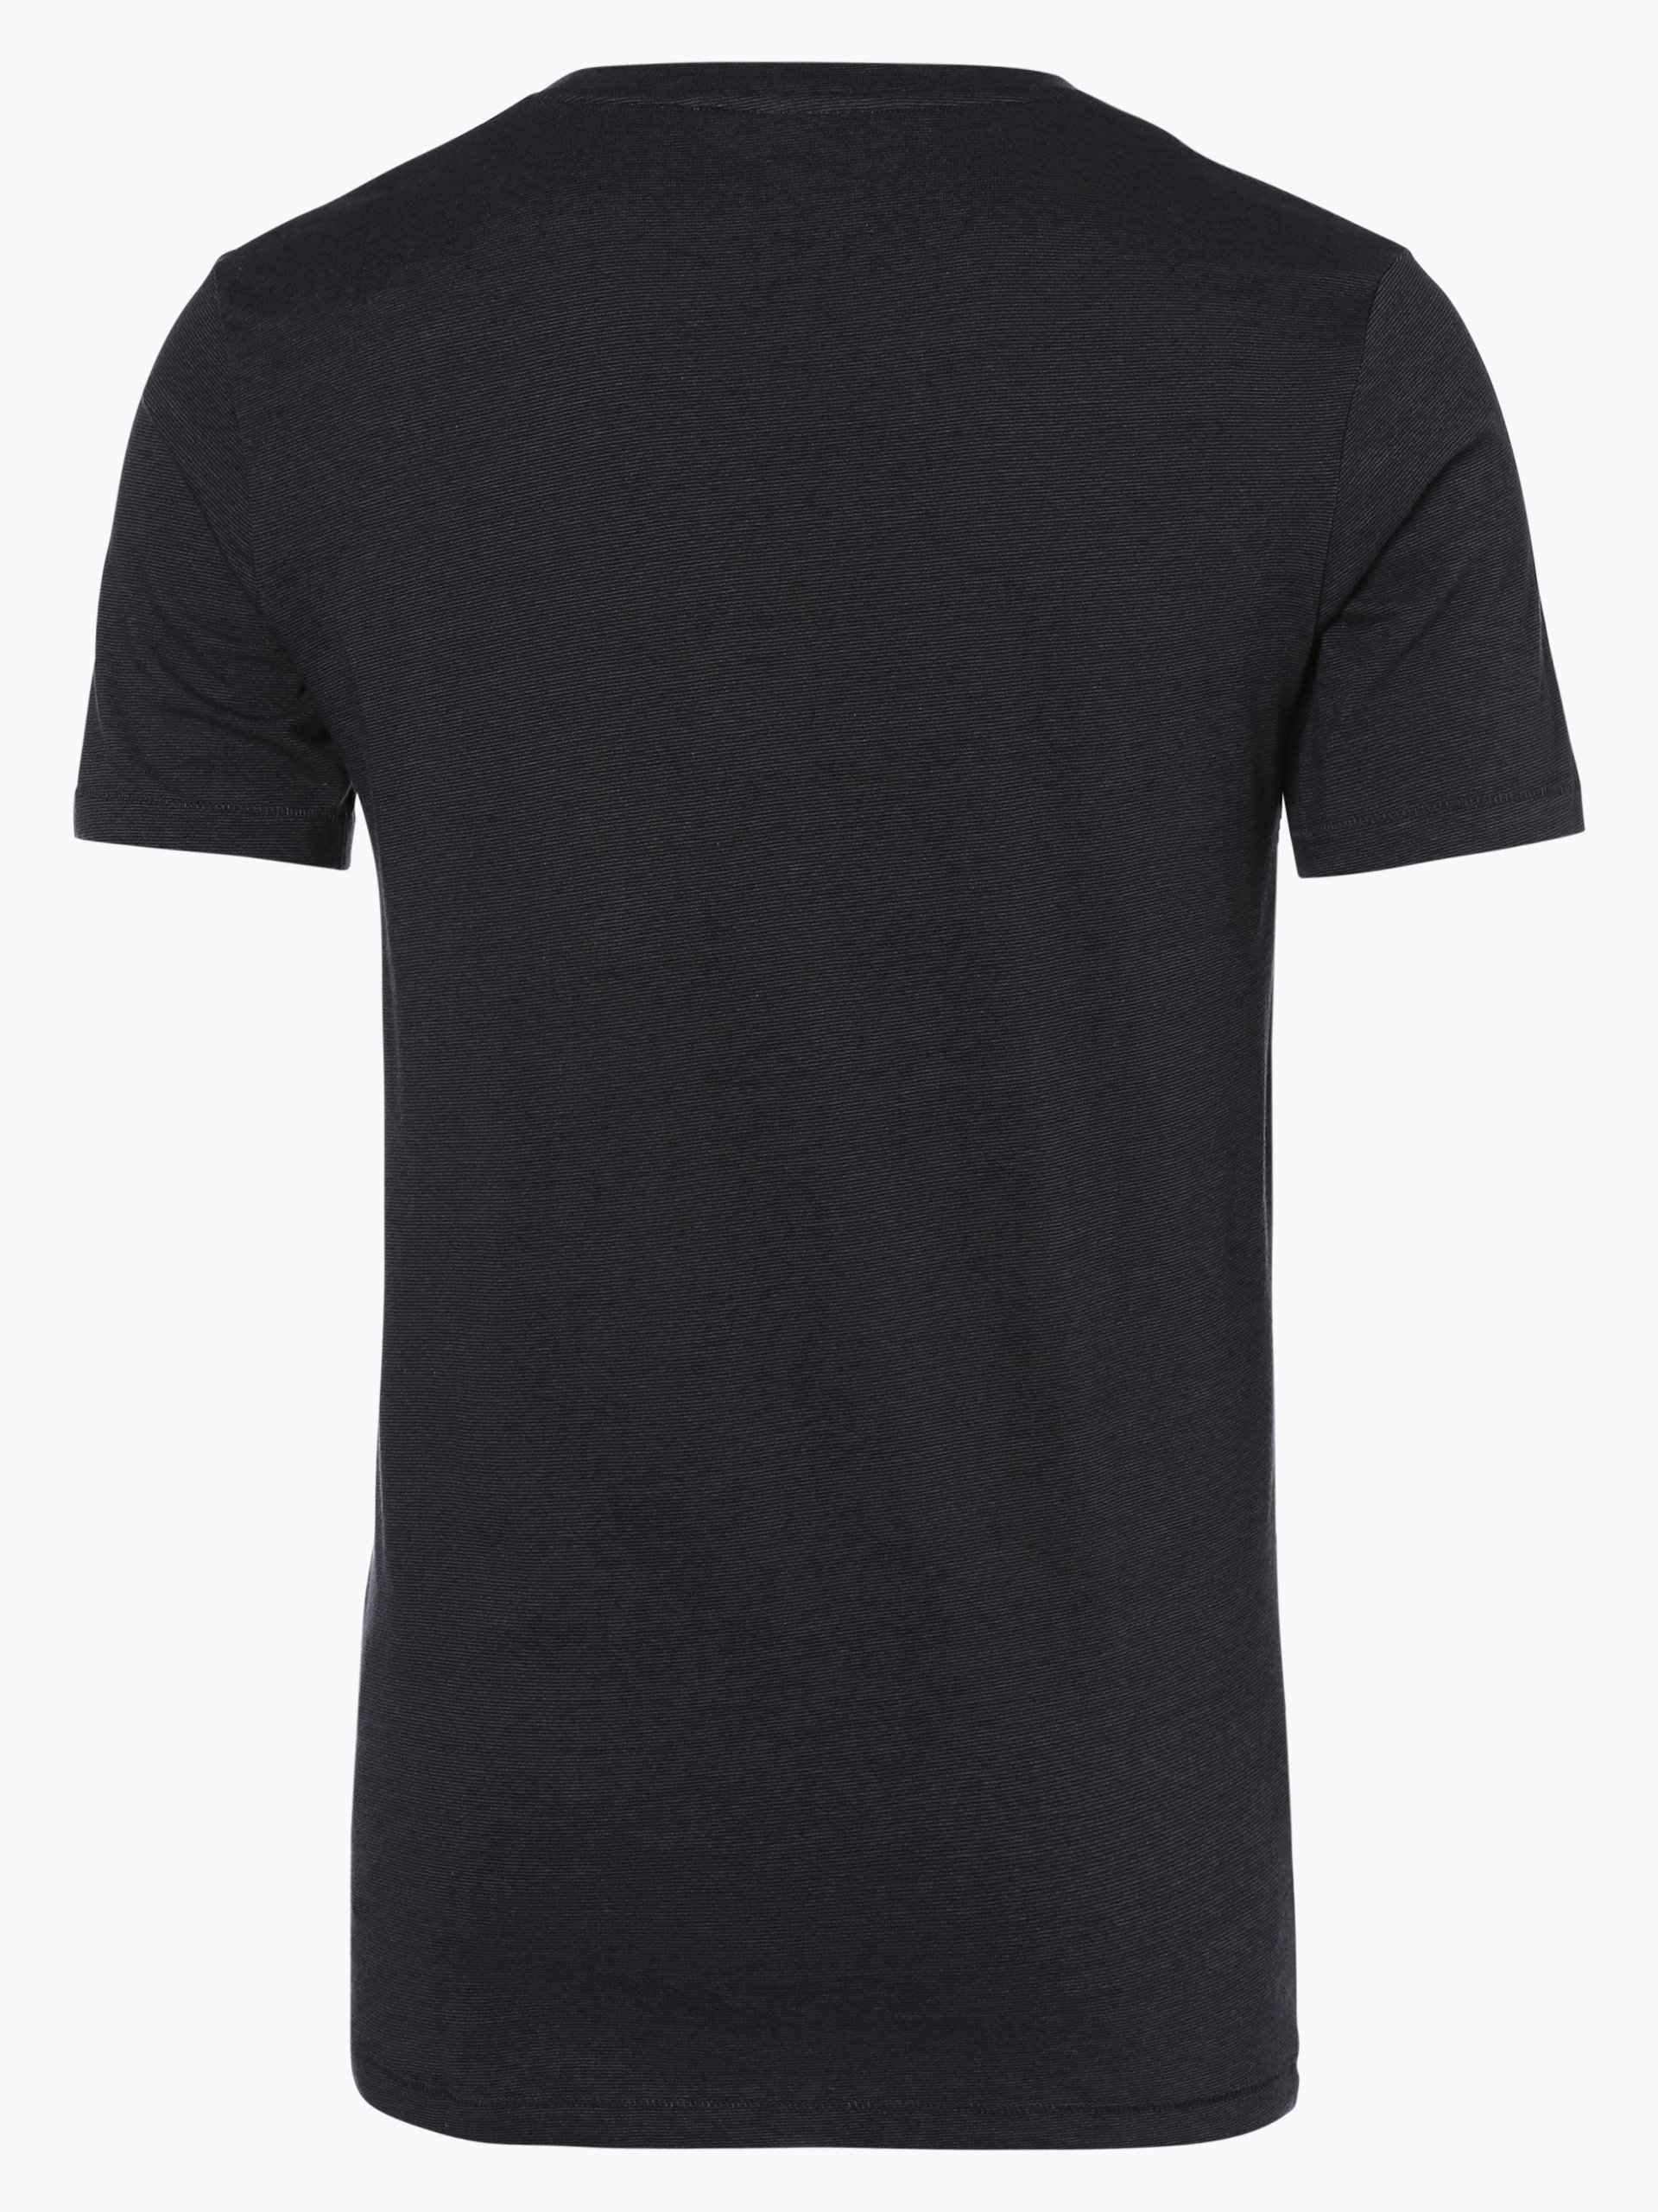 Minimum Herren T-Shirt - Nowa